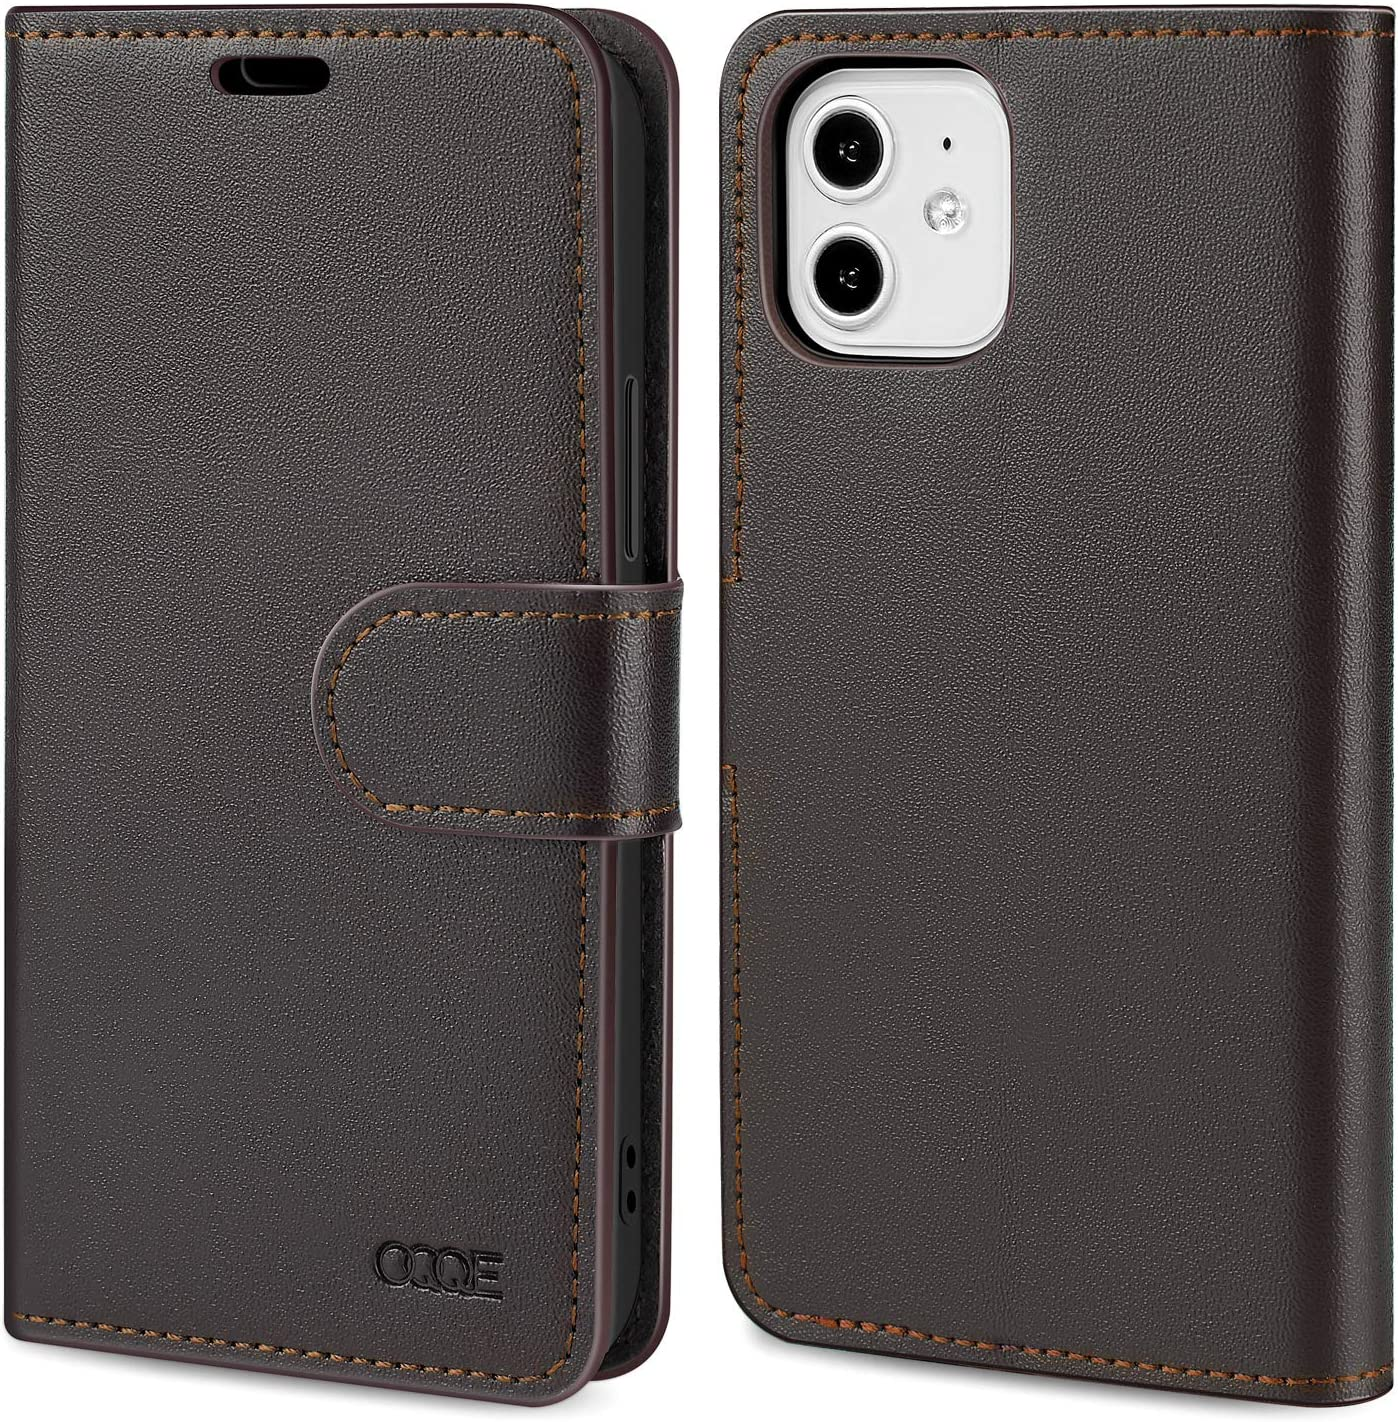 """OQQE Compatible with iPhone 12/12 Pro 6.1"""" Wallet Case,Cowhide Genuine Leather Flip Cover Shell [RFID Blocking] 3 Card Slots and 1 Cash Clip, with [Kickstand Function]"""